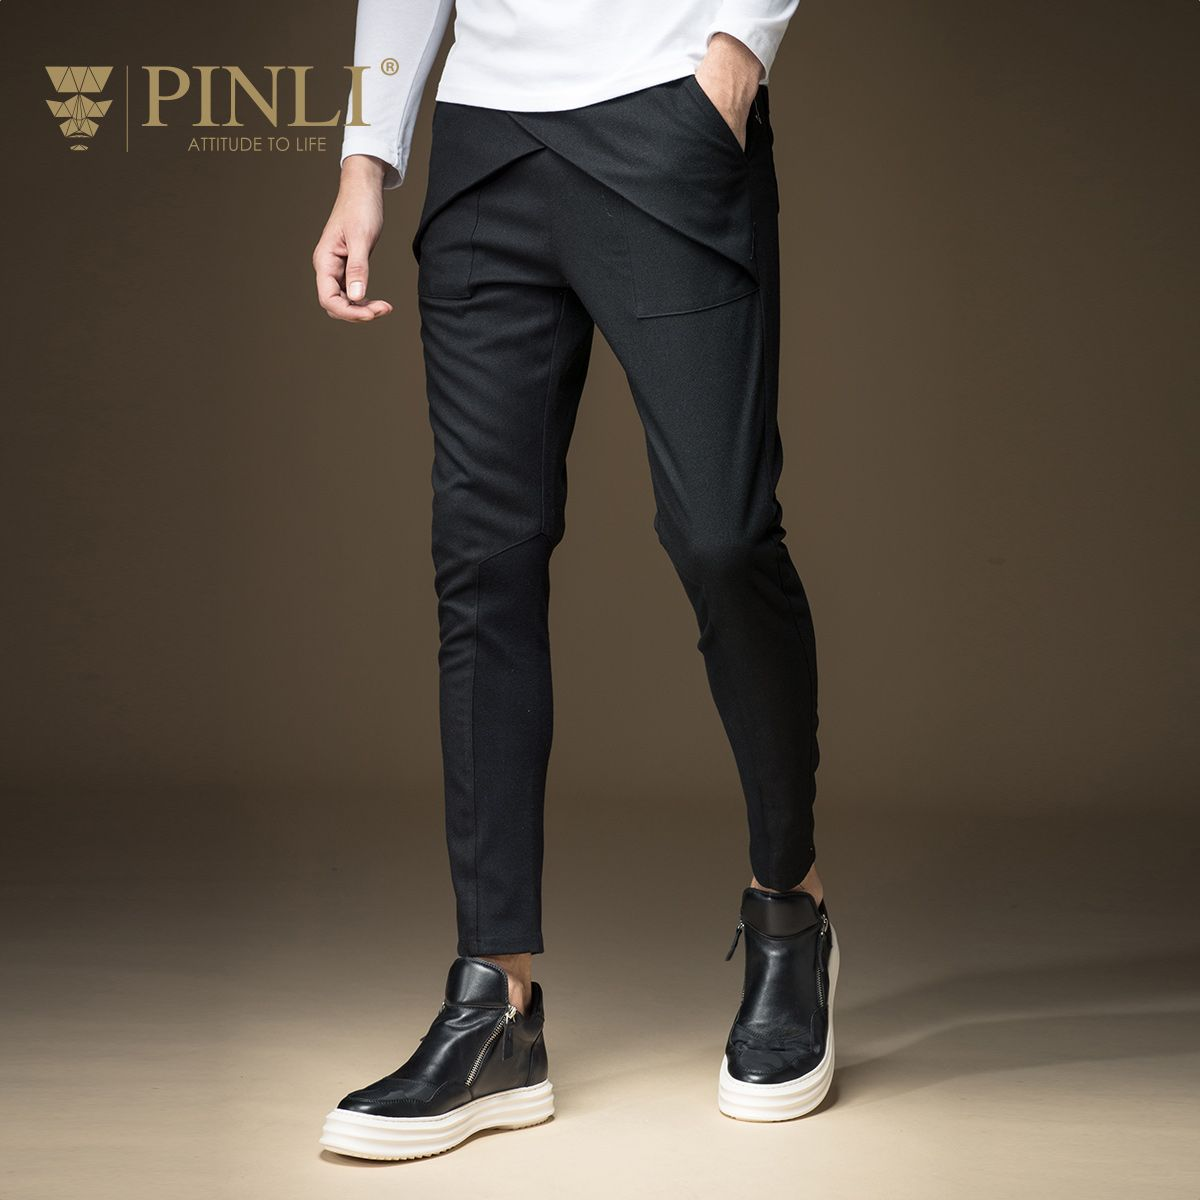 2017 Military Real Straight Mid Youth Autumn New Arrival Men's Clothing Slim Casual Skinny Pants Trousers B163317047